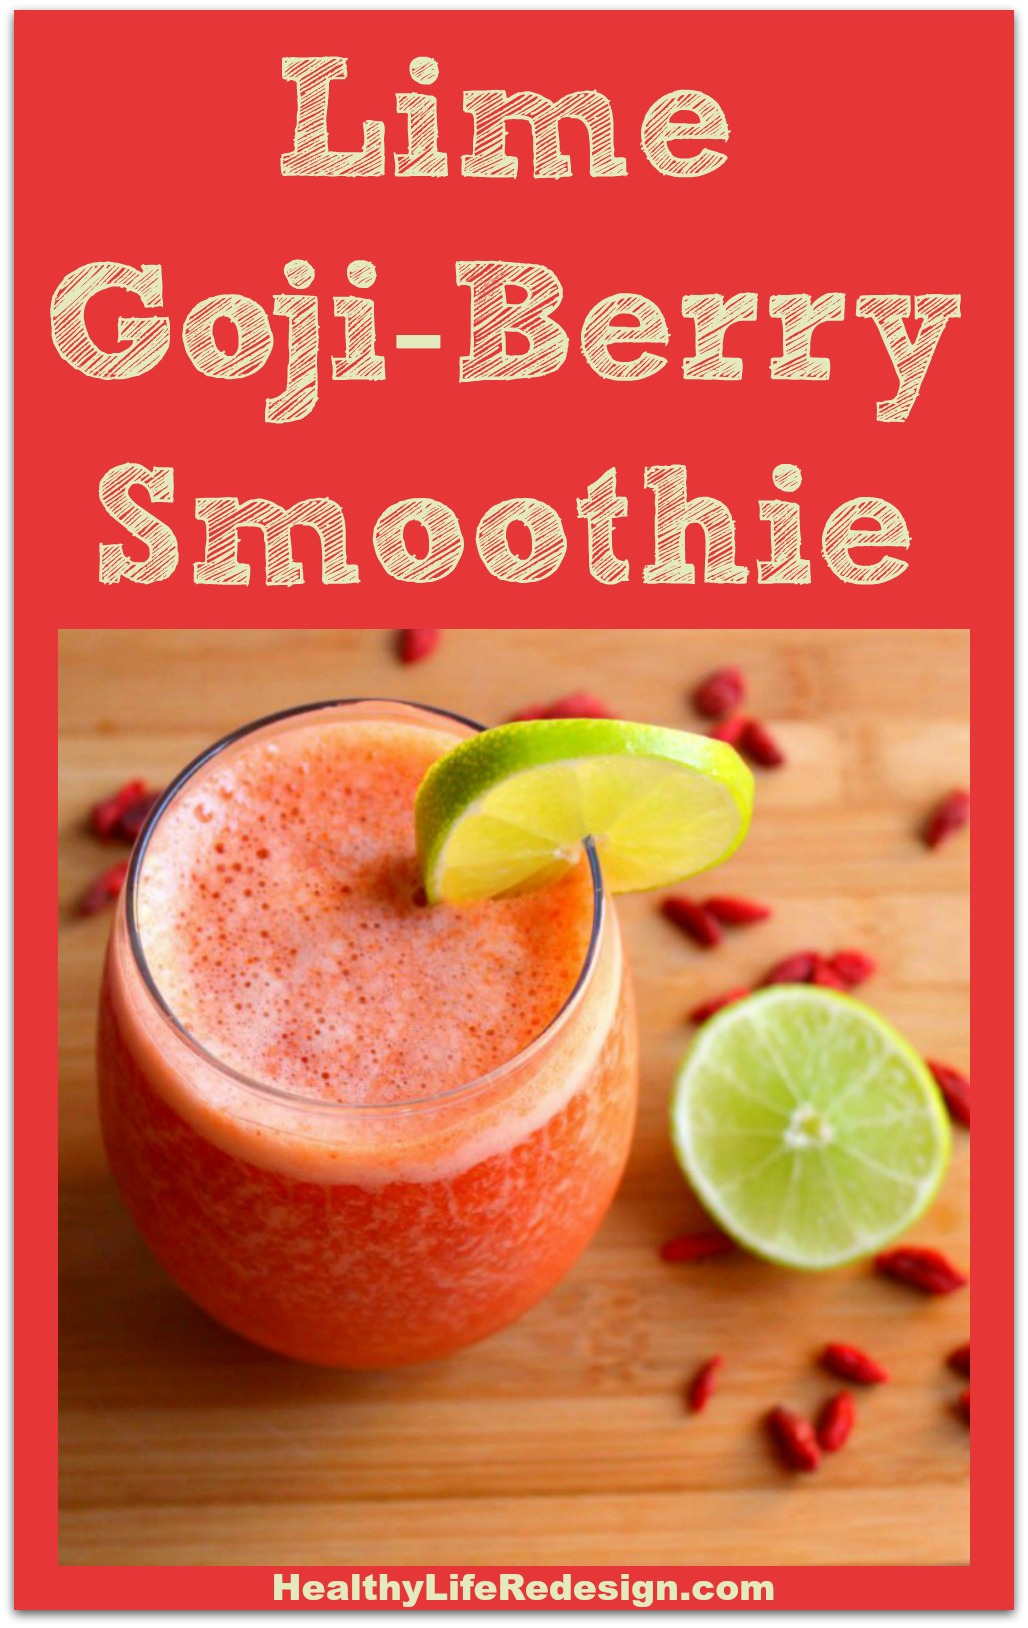 Lime Goji Berry Smoothie - This smoothie is packed with antioxidants and is the perfect refreshing beverage for a hot summers day! www.HealthyLifeRedesign.com